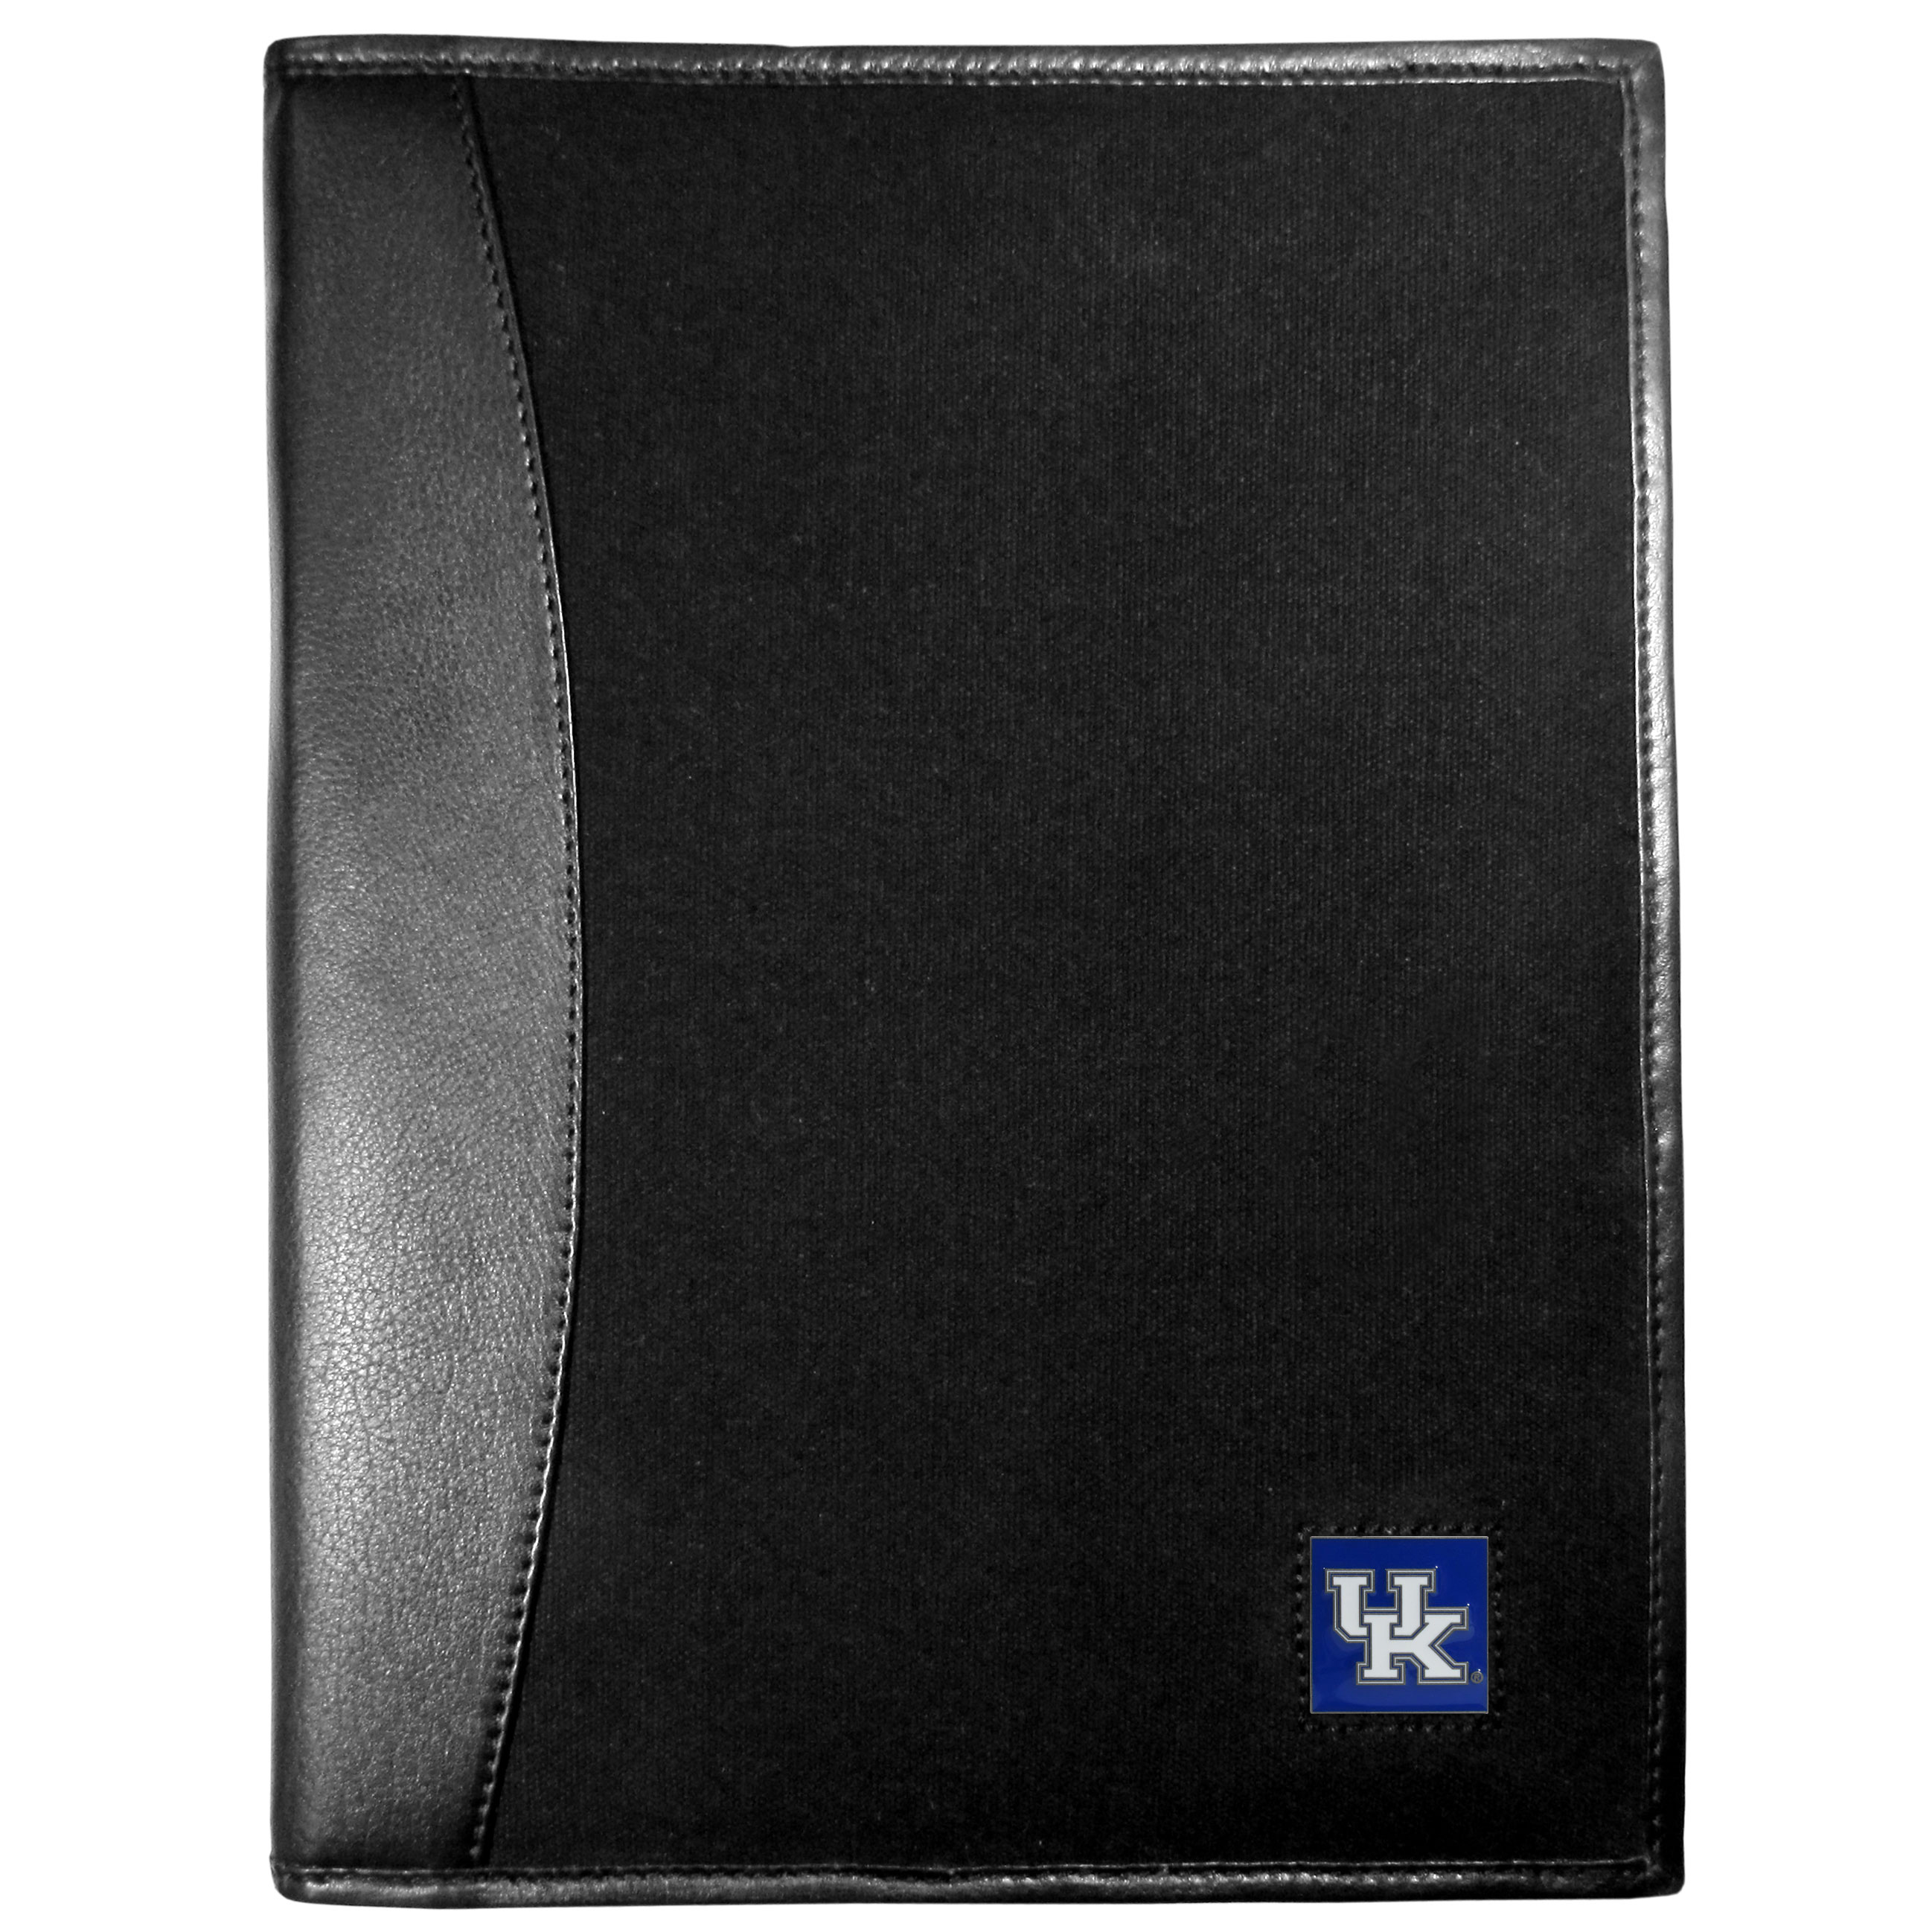 Kentucky Wildcats Leather and Canvas Padfolio - Our leather and canvas padfolio perfectly blends form and function. The attractive portfolio is bound in fine grain leather with an attractive canvas finish and the interior is a soft nylon. This high quality business accessory also features a fully cast metal Kentucky Wildcats emblem that is subtly set in the corner of the organizer. It is packed with features like 6 card slots for badges, business cards, hotel keys or credit cards and ID with a large pocket for loose papers and a writing tablet slot making it a must-have for the professional on the go.